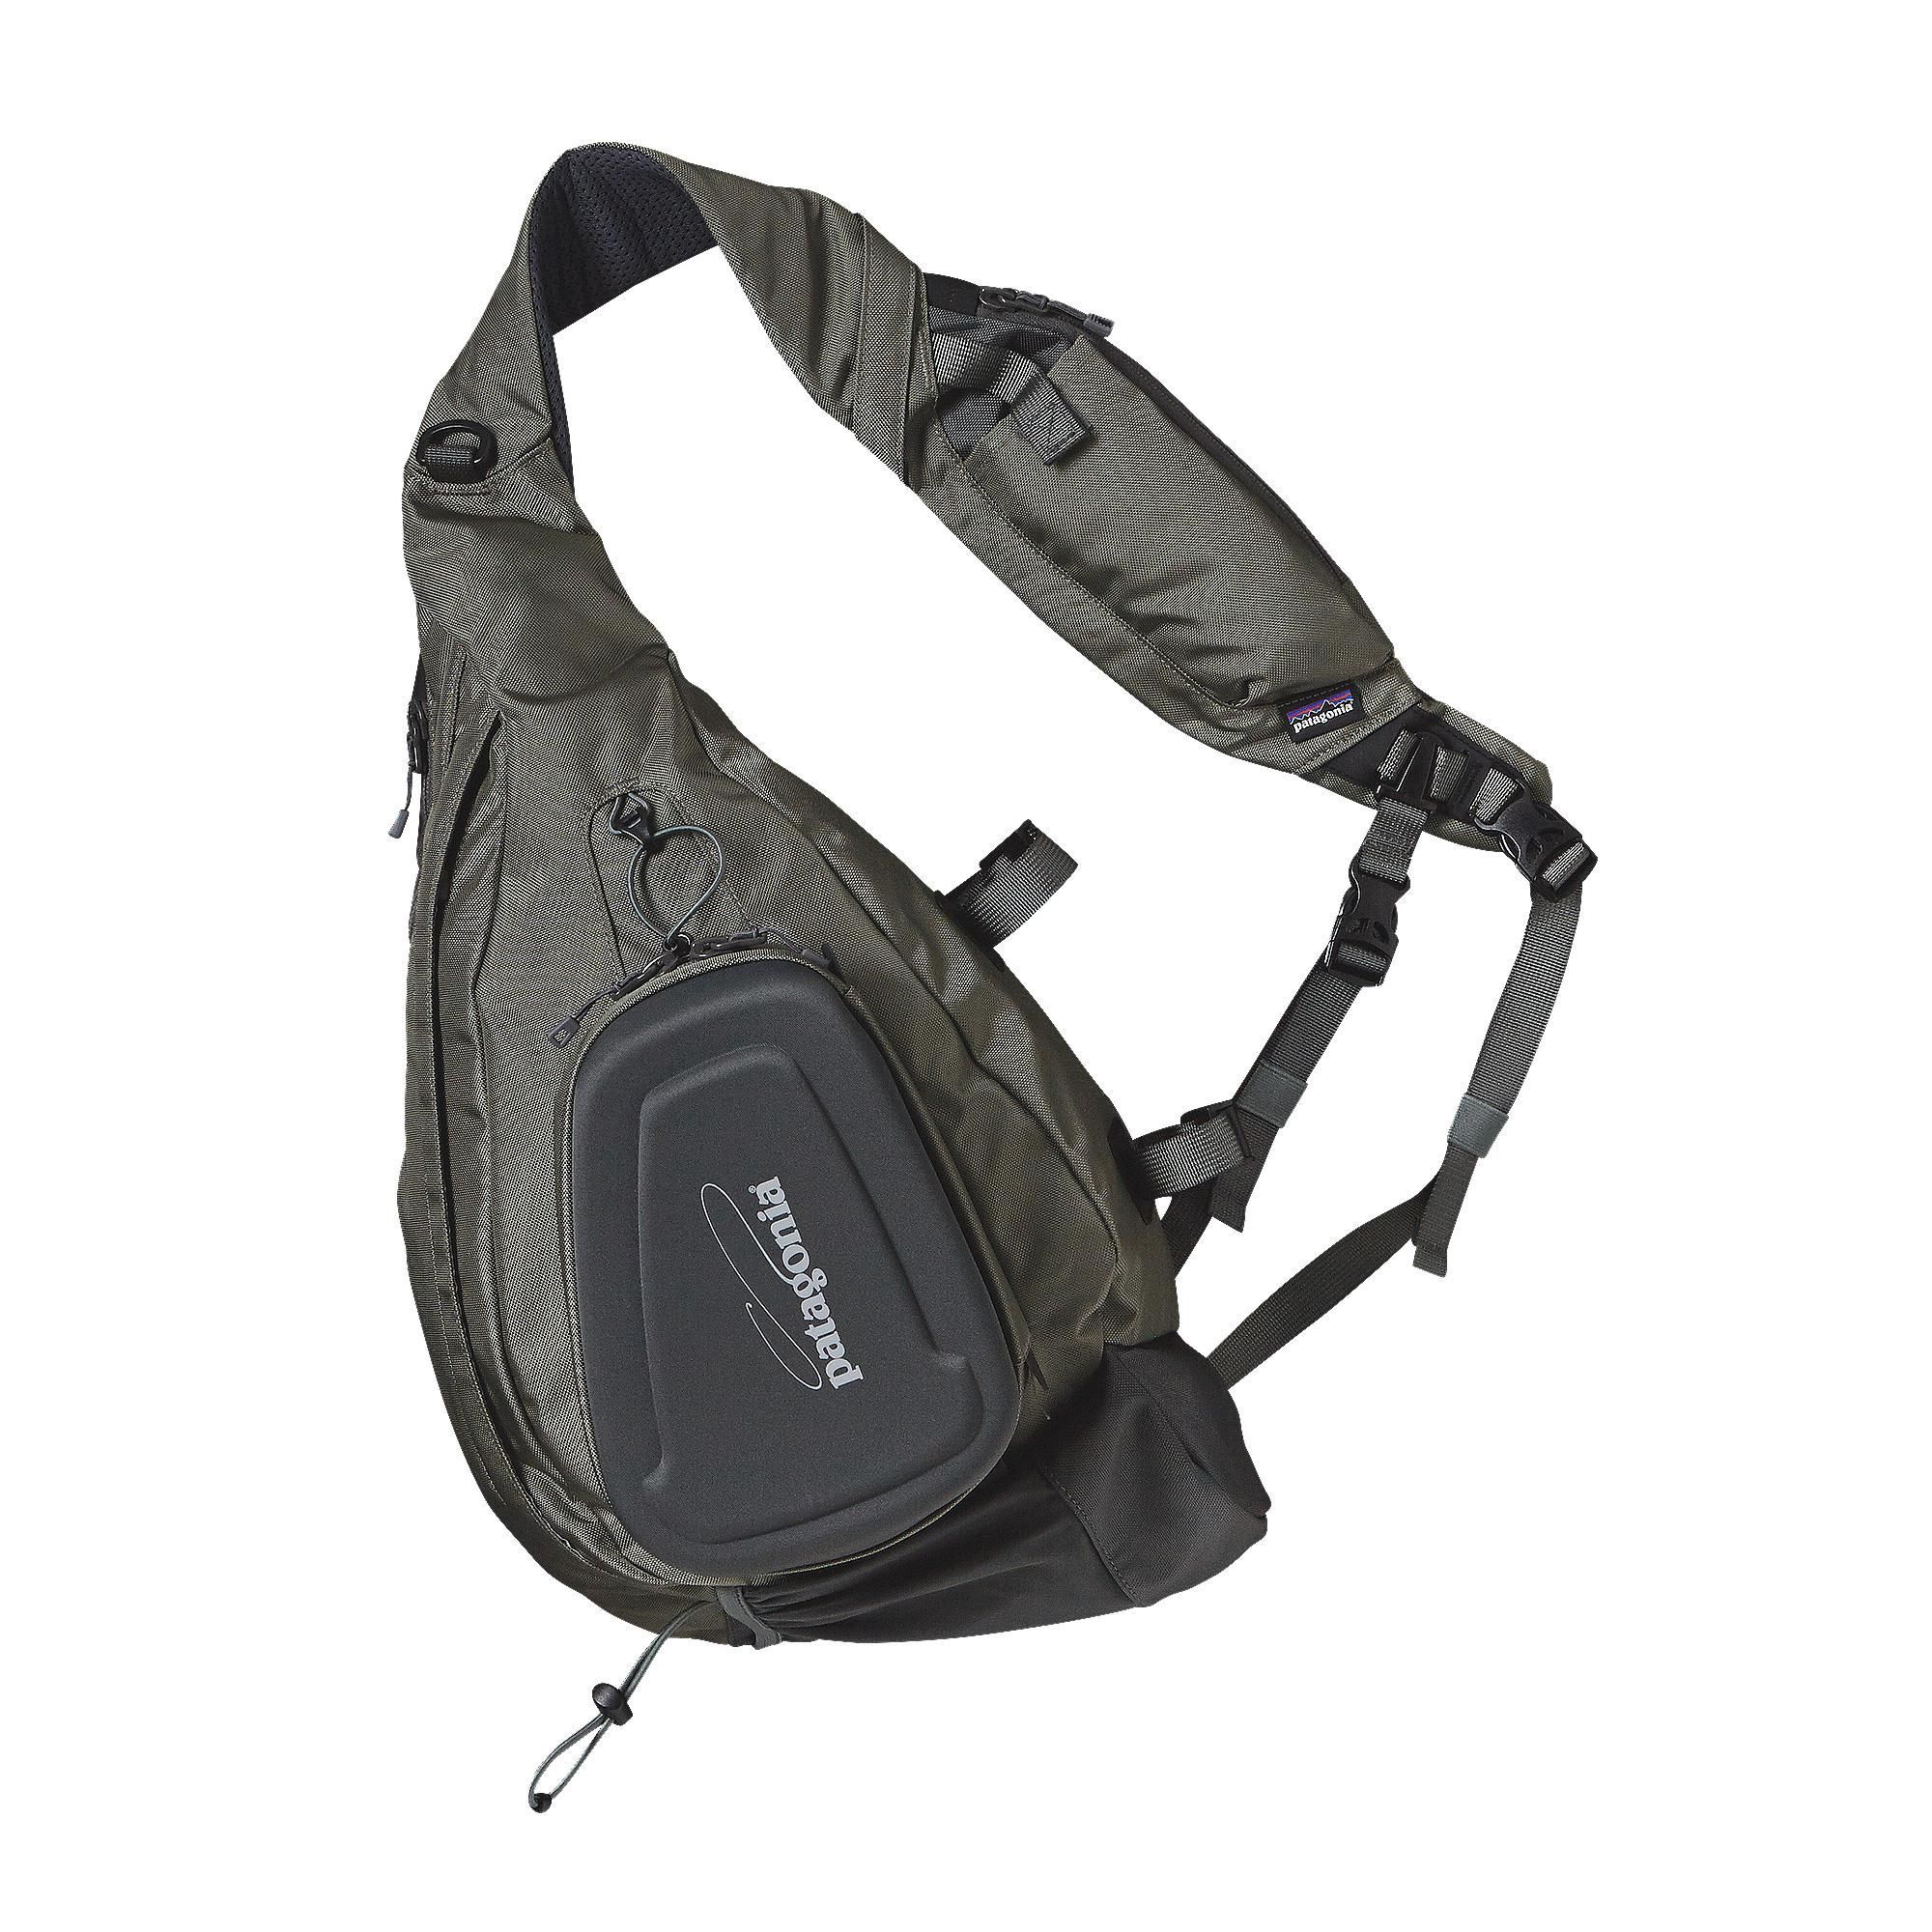 The Patagonia Stealth Atom Fly Fishing Sling bag is a versatile sling pack  that provides functional performance for anglers looking for a vest  alternative. 02da3aef1e